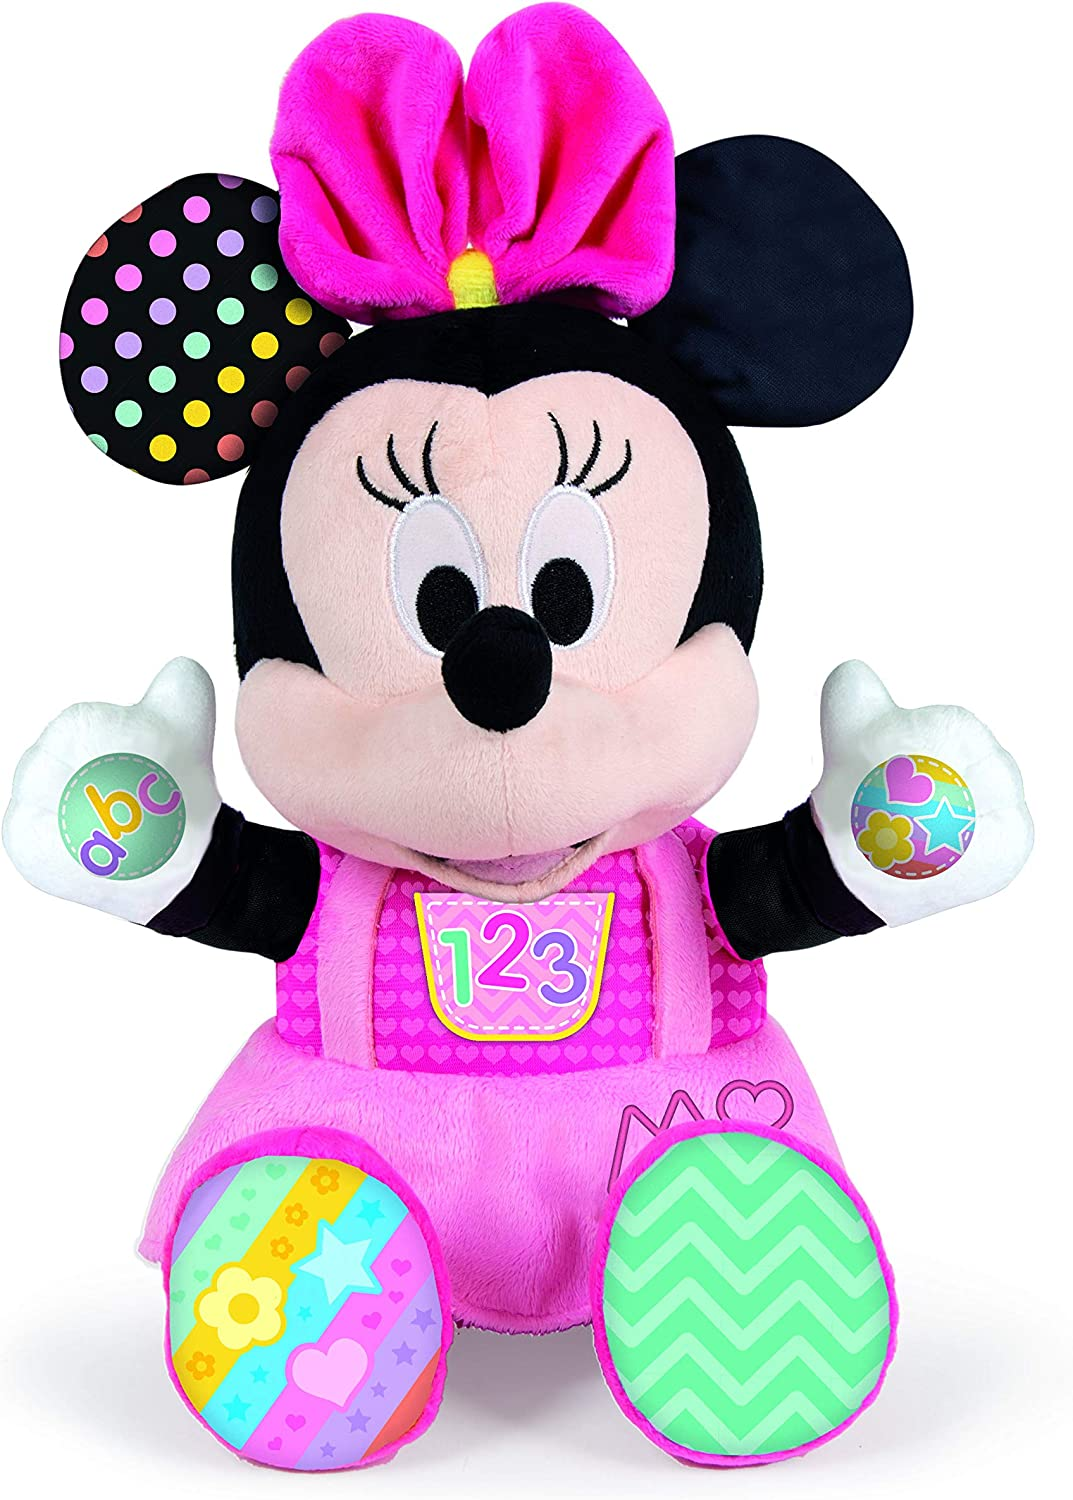 Minnie Mouse Mickey Mouse Minnie Sonajero Flor (Clementoni